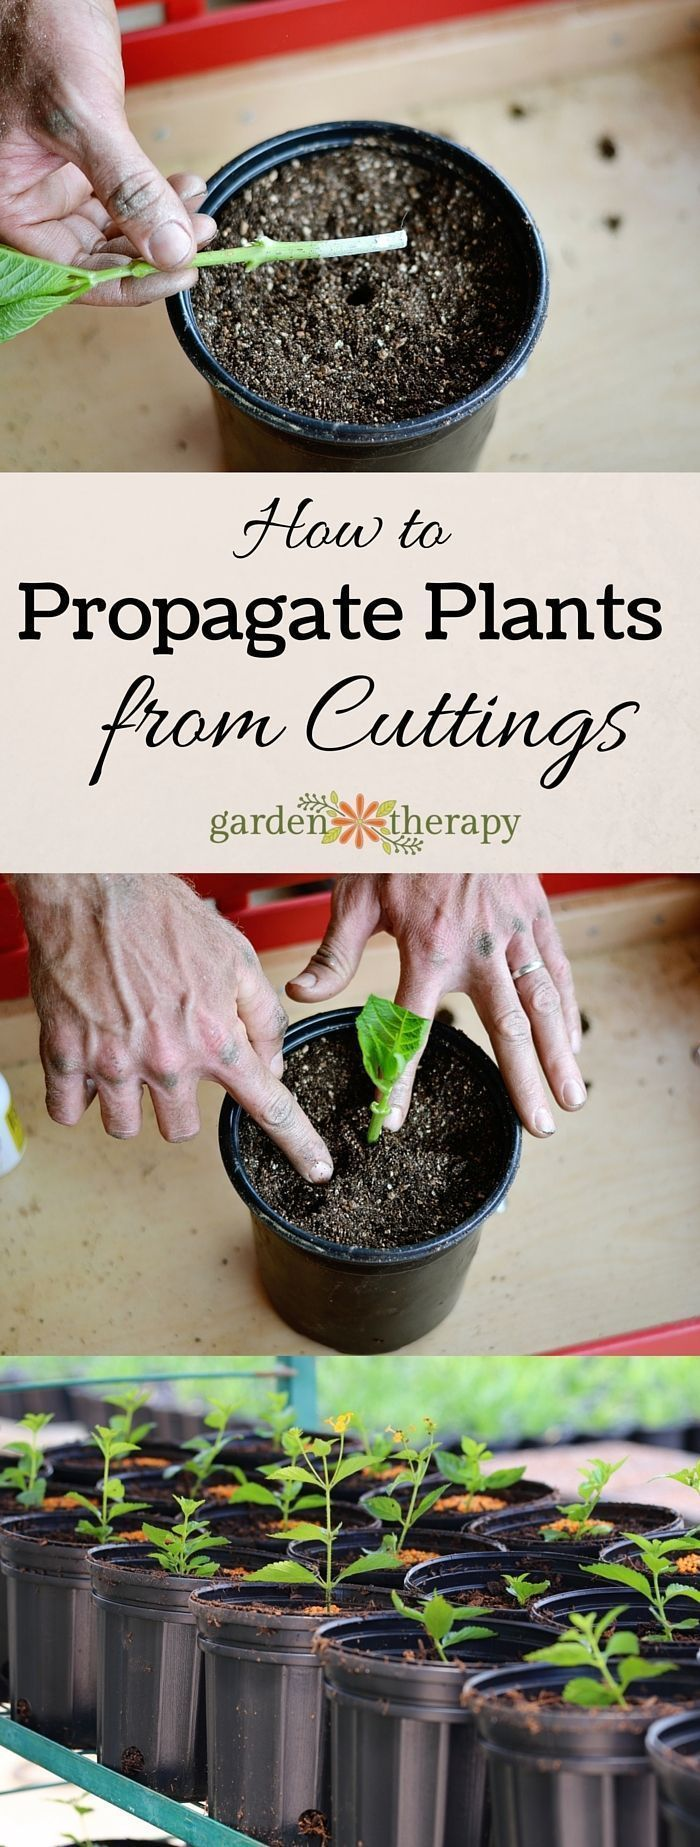 How to Propagate Plants from Cuttings #indoorgardening #Vegetablegardenbasics